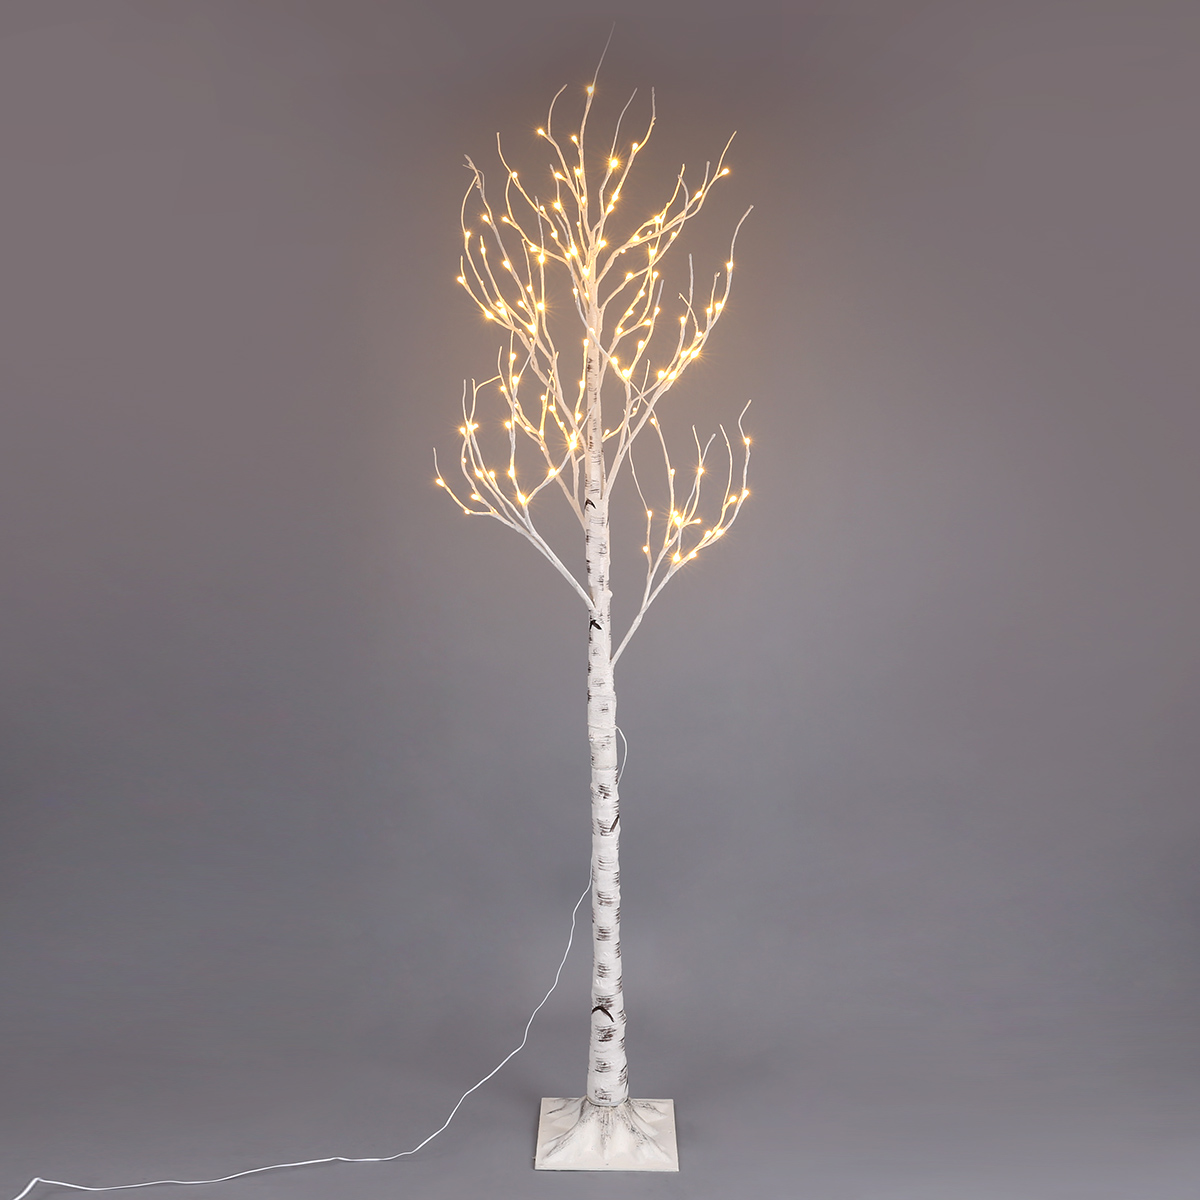 7ft 5ft 4ft 120 72 48led Birch Twig Tree Warm White Xmas Party Lights Home Decor